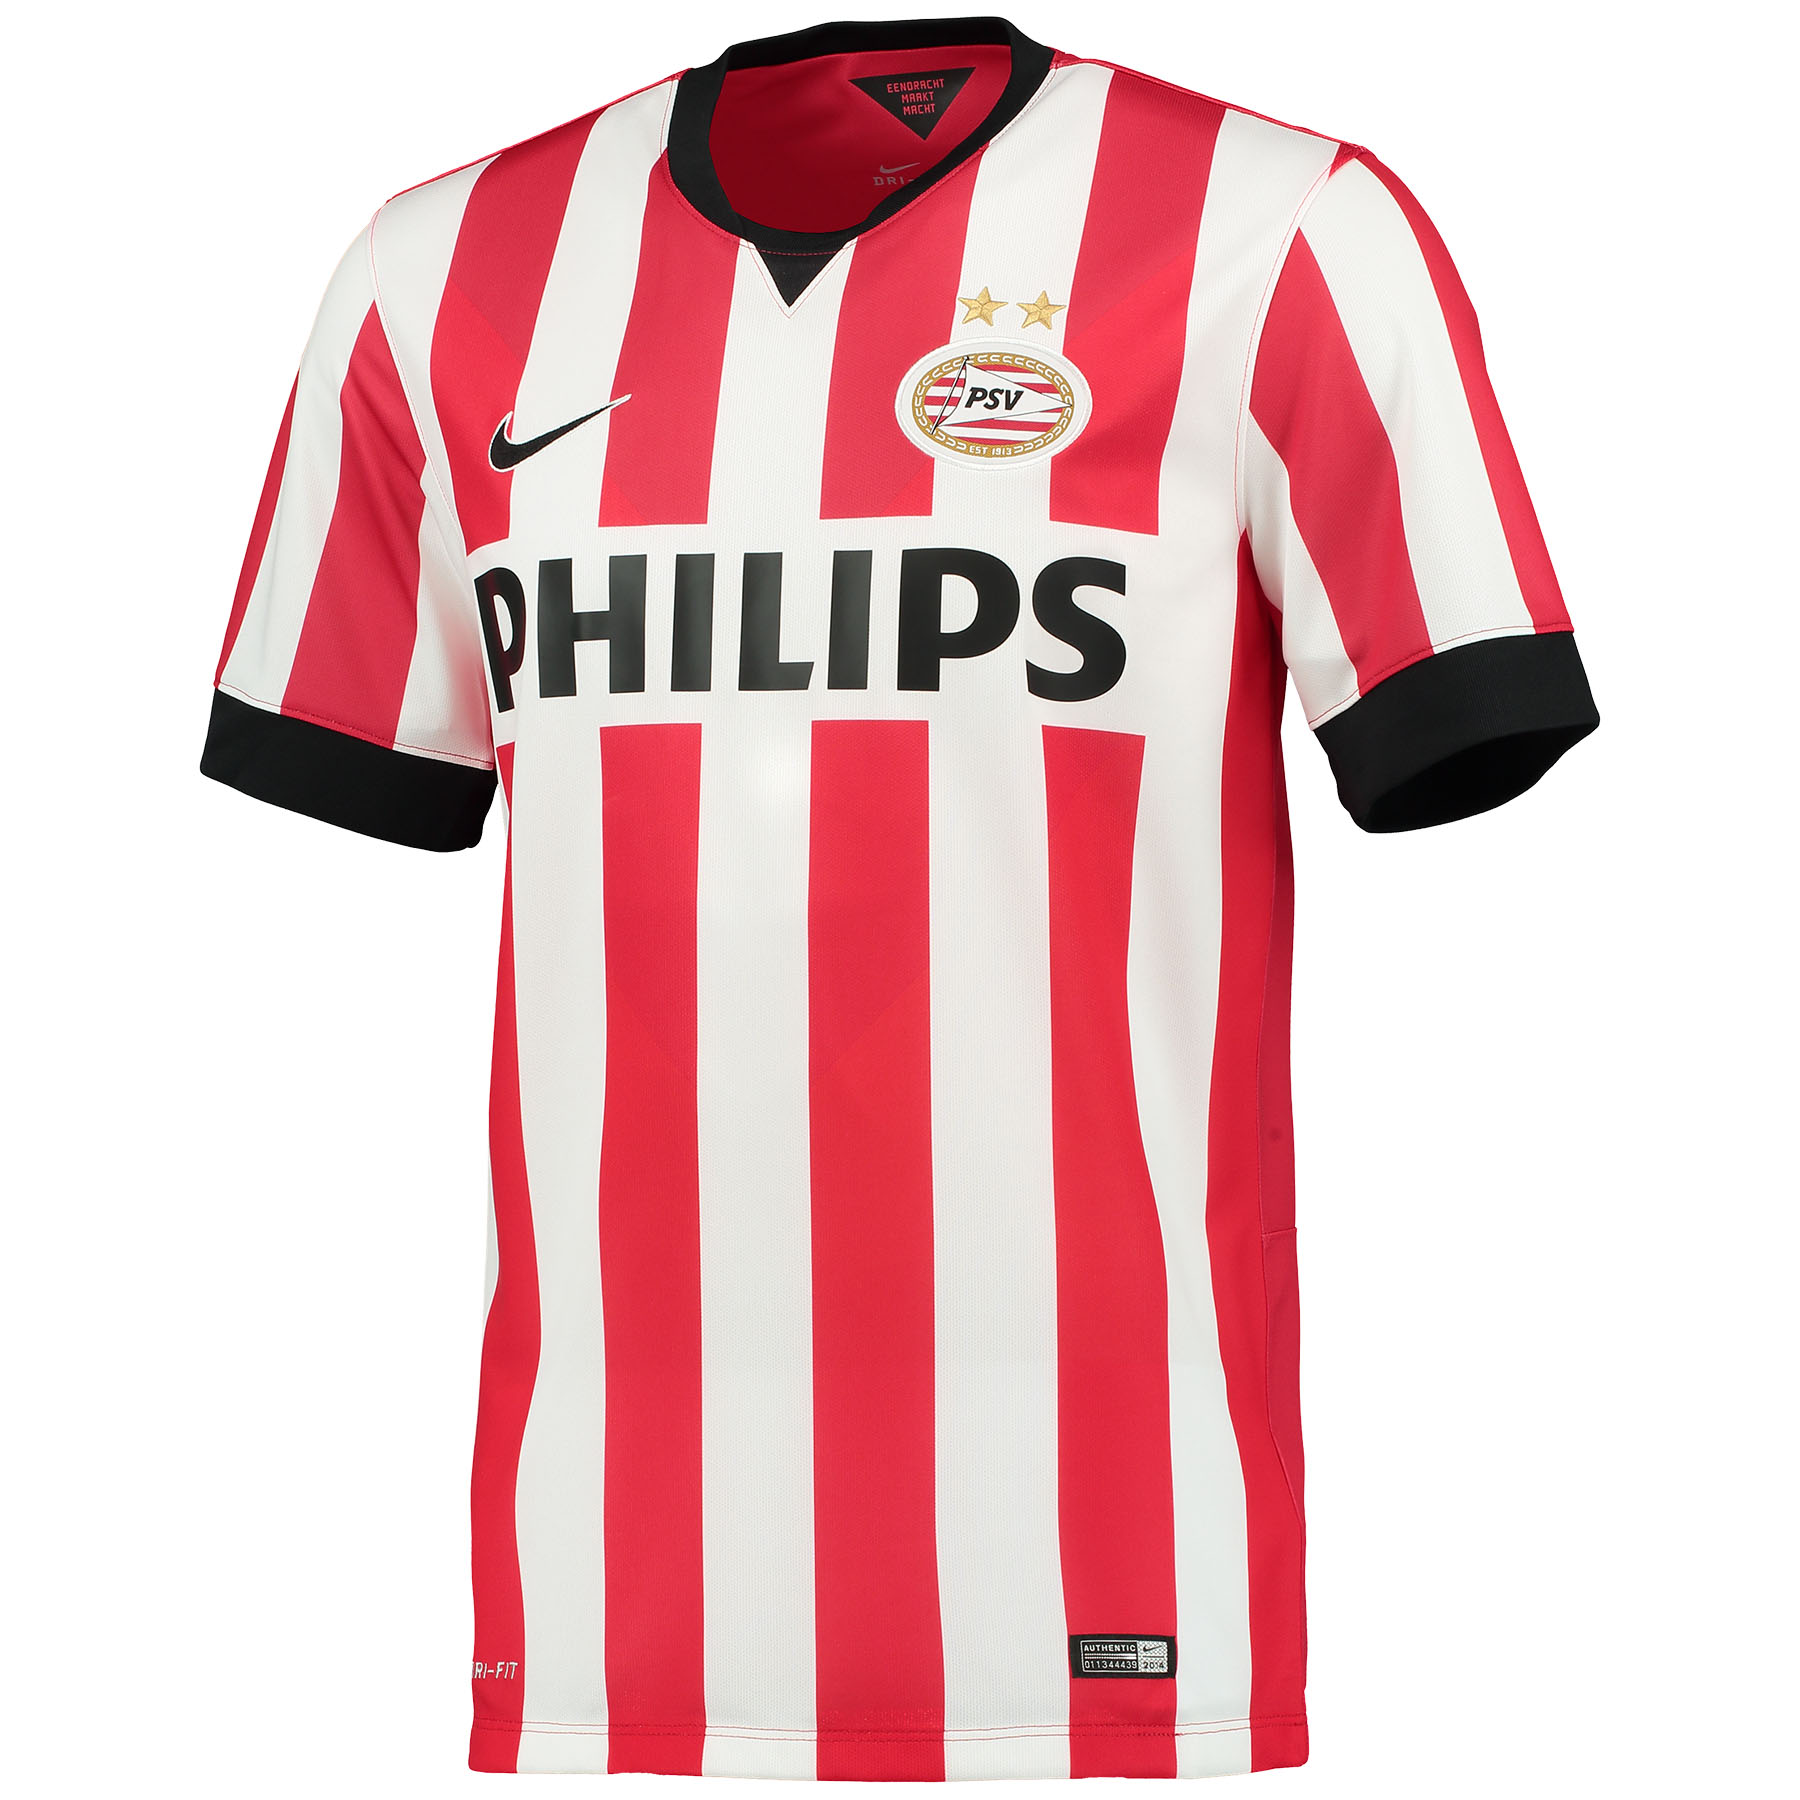 PSV Home Shirt 2014/15 Red